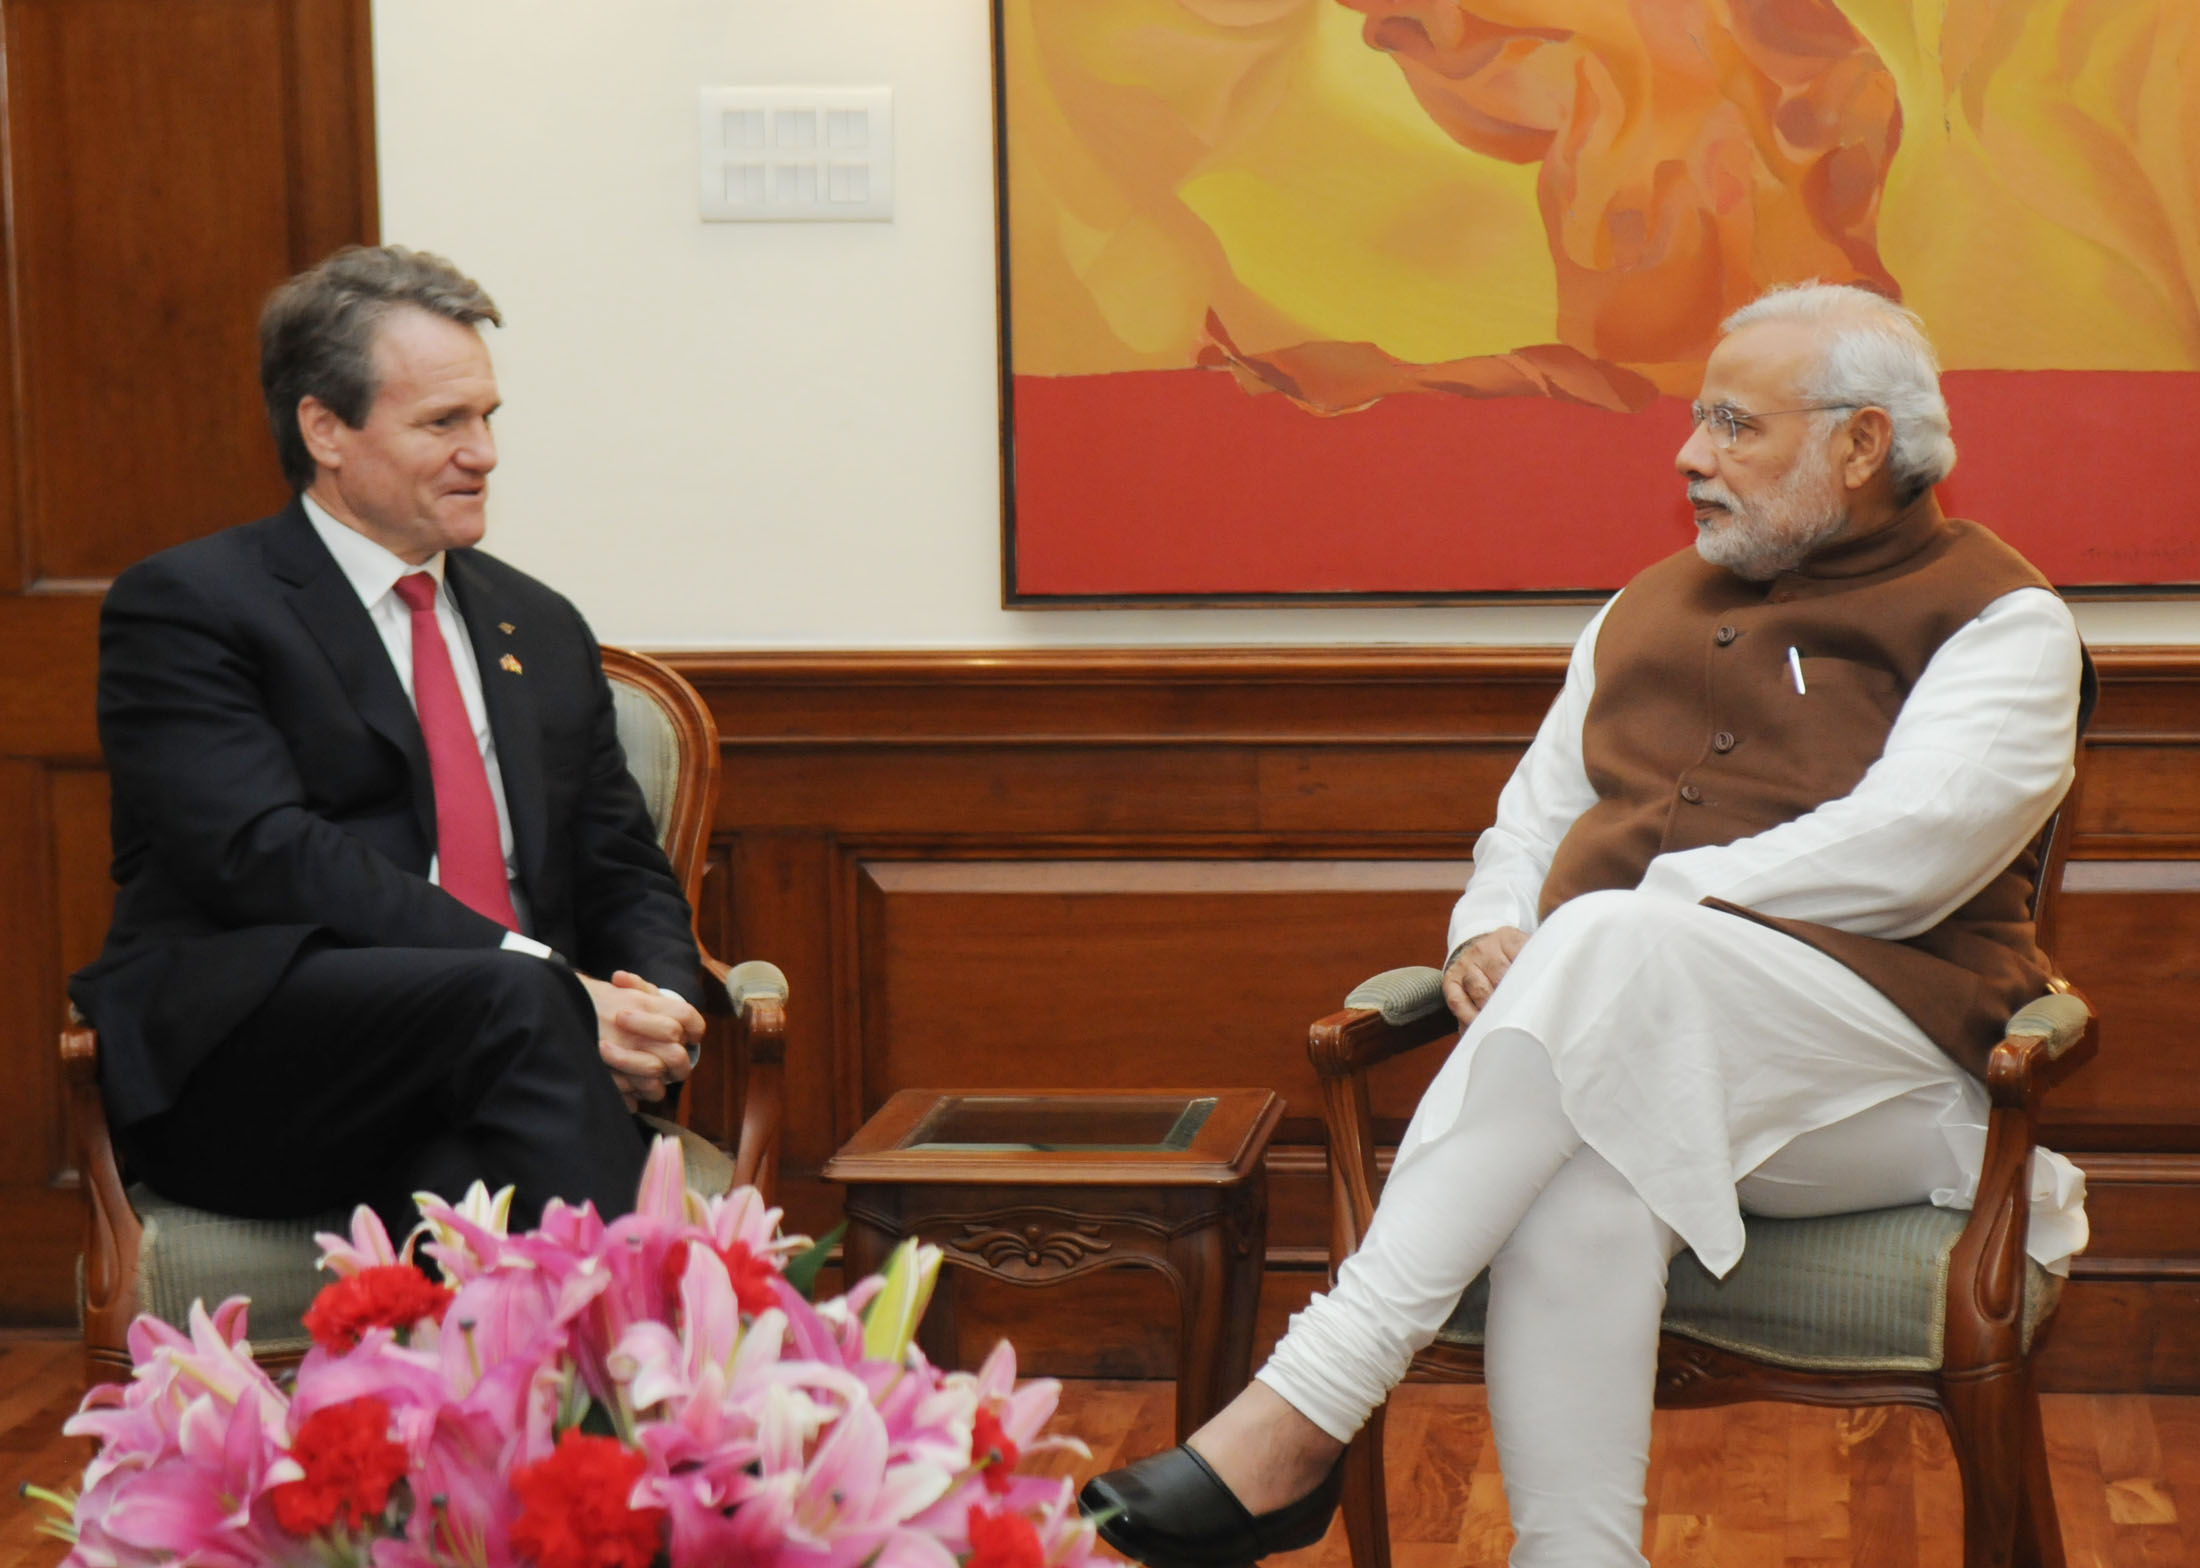 File:Bank of America Chairman and CEO Brian T. Moynihan meets PM Modi